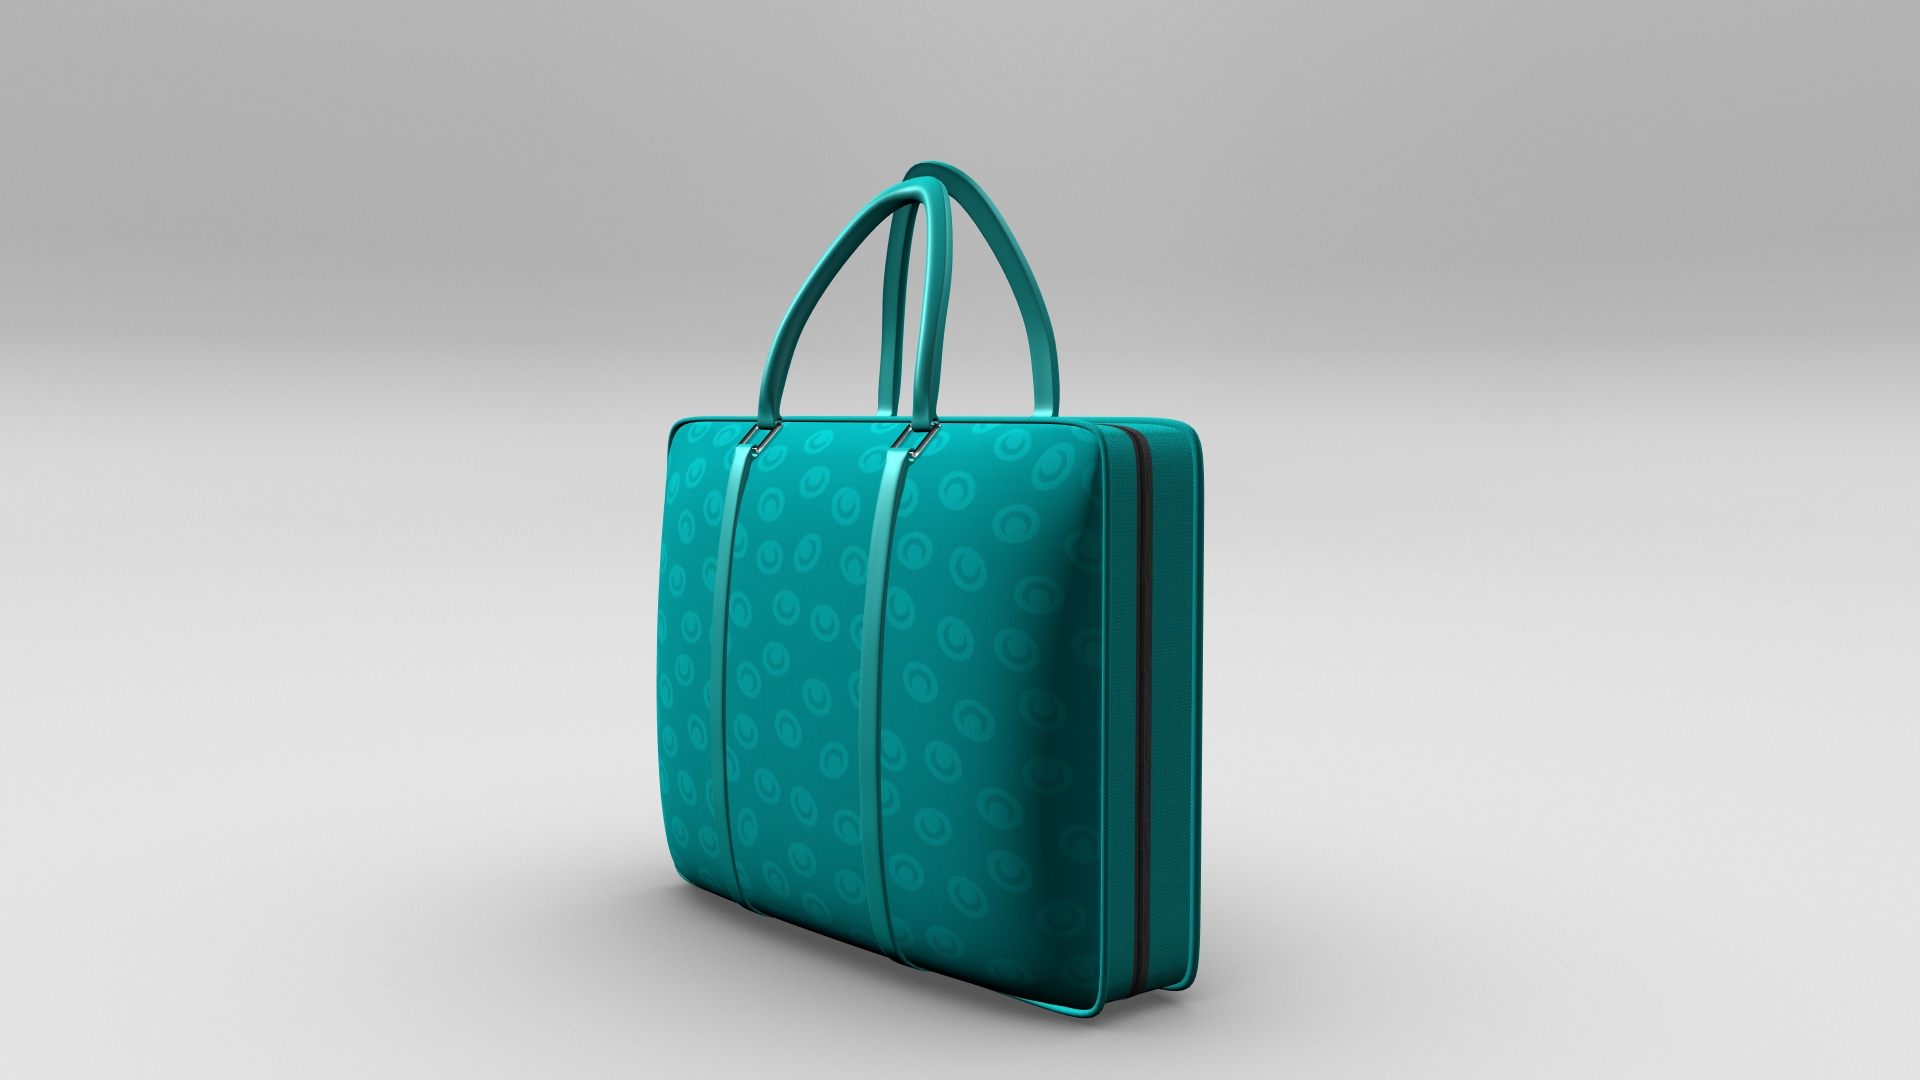 ladies handbag 3d model max fbx ma mb obj 286060